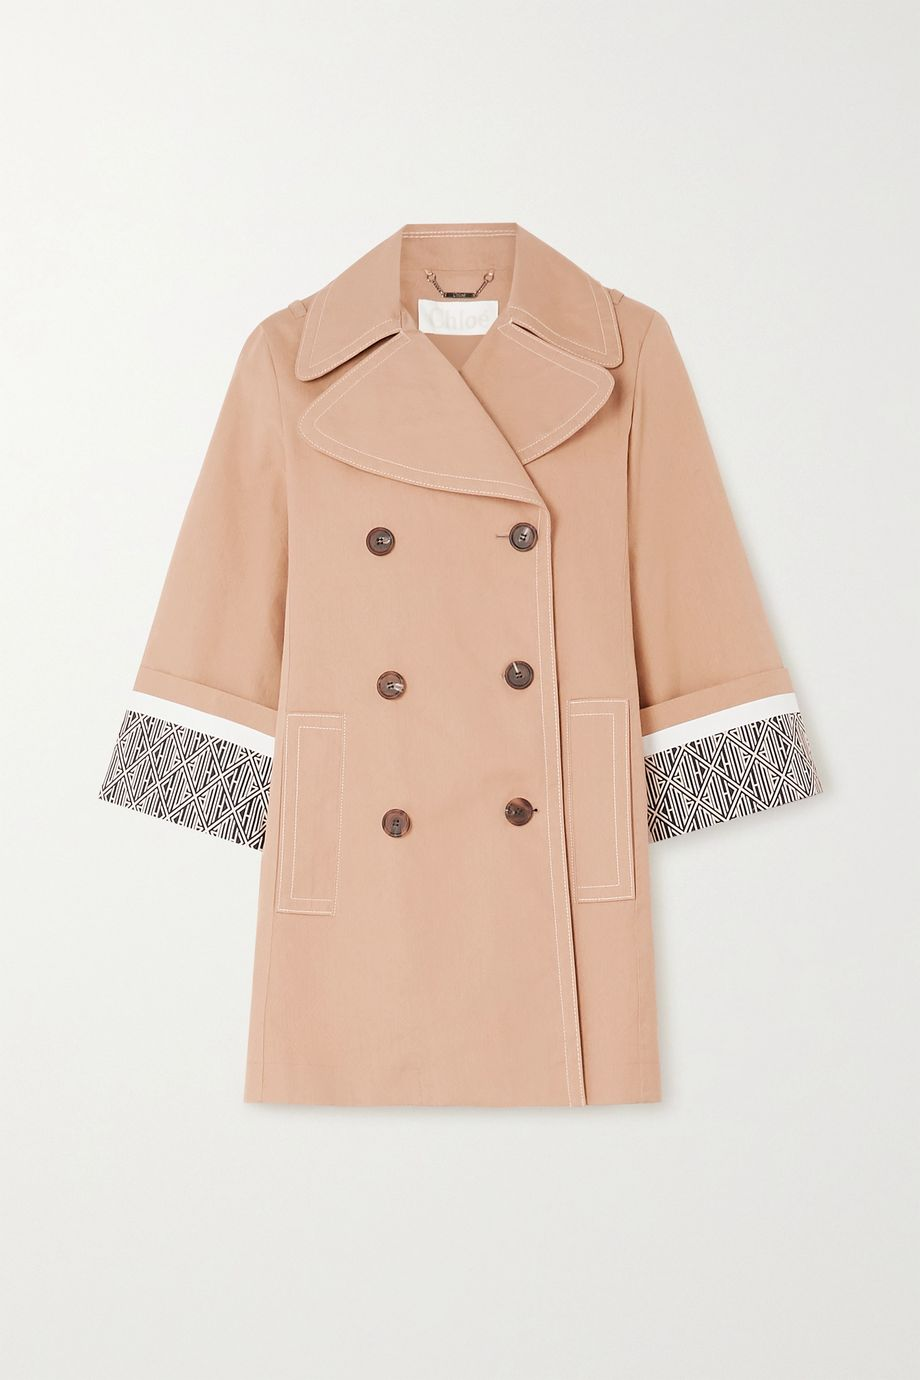 Chloé Cotton trench coat